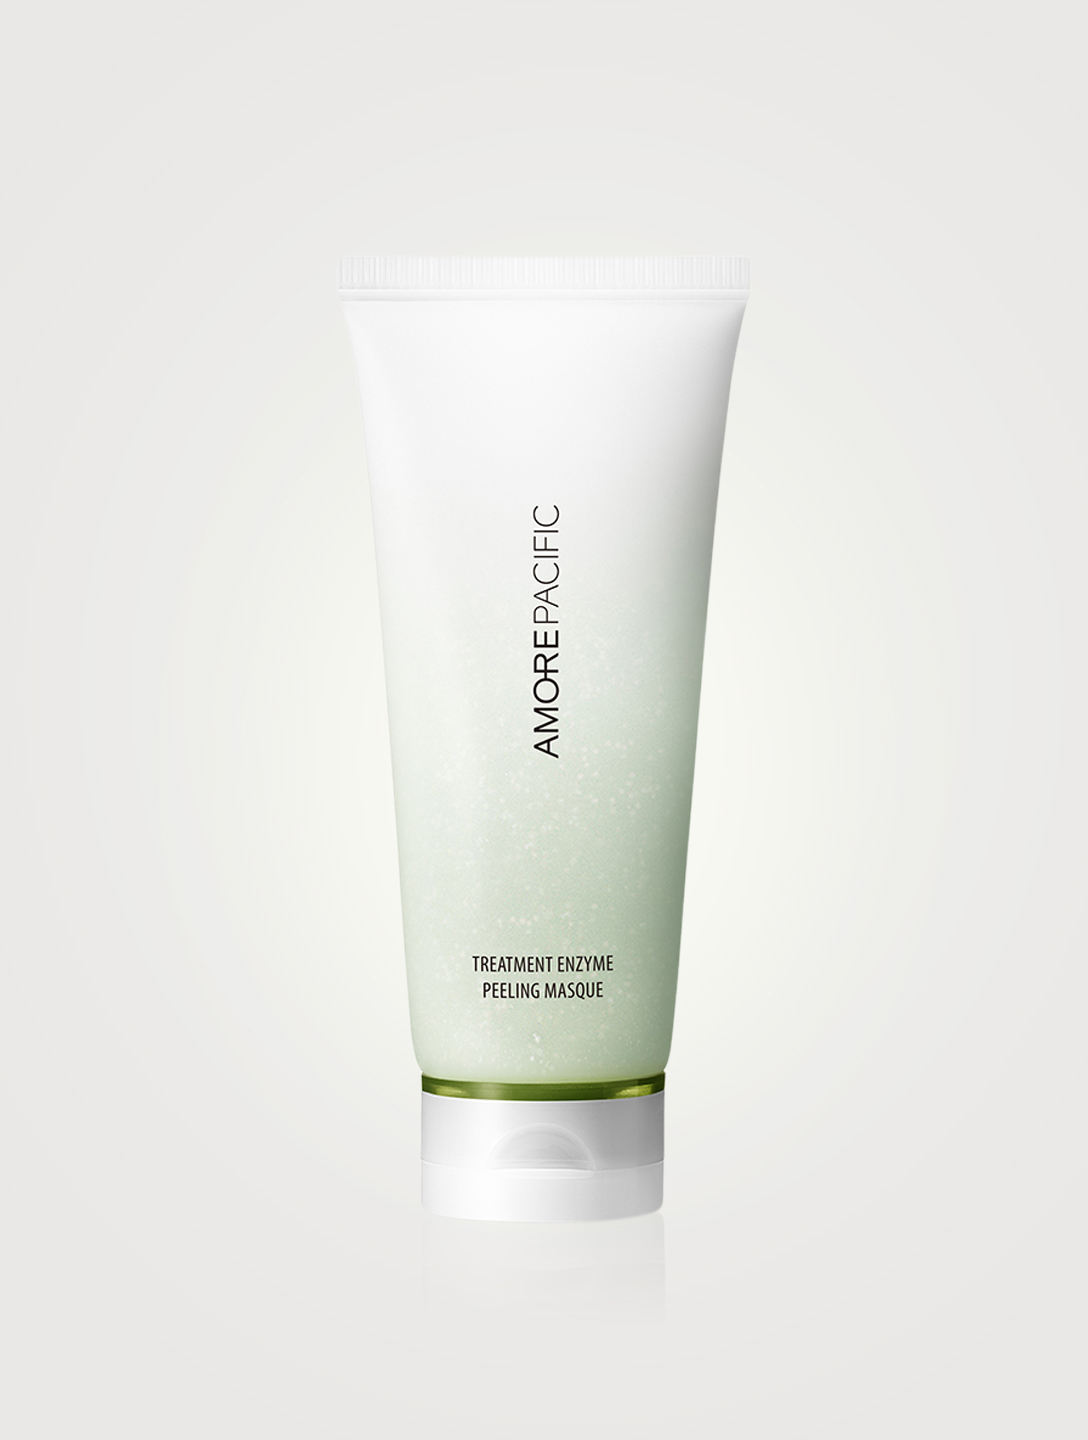 AMOREPACIFIC Treatment Enzyme Peeling Masque Beauty